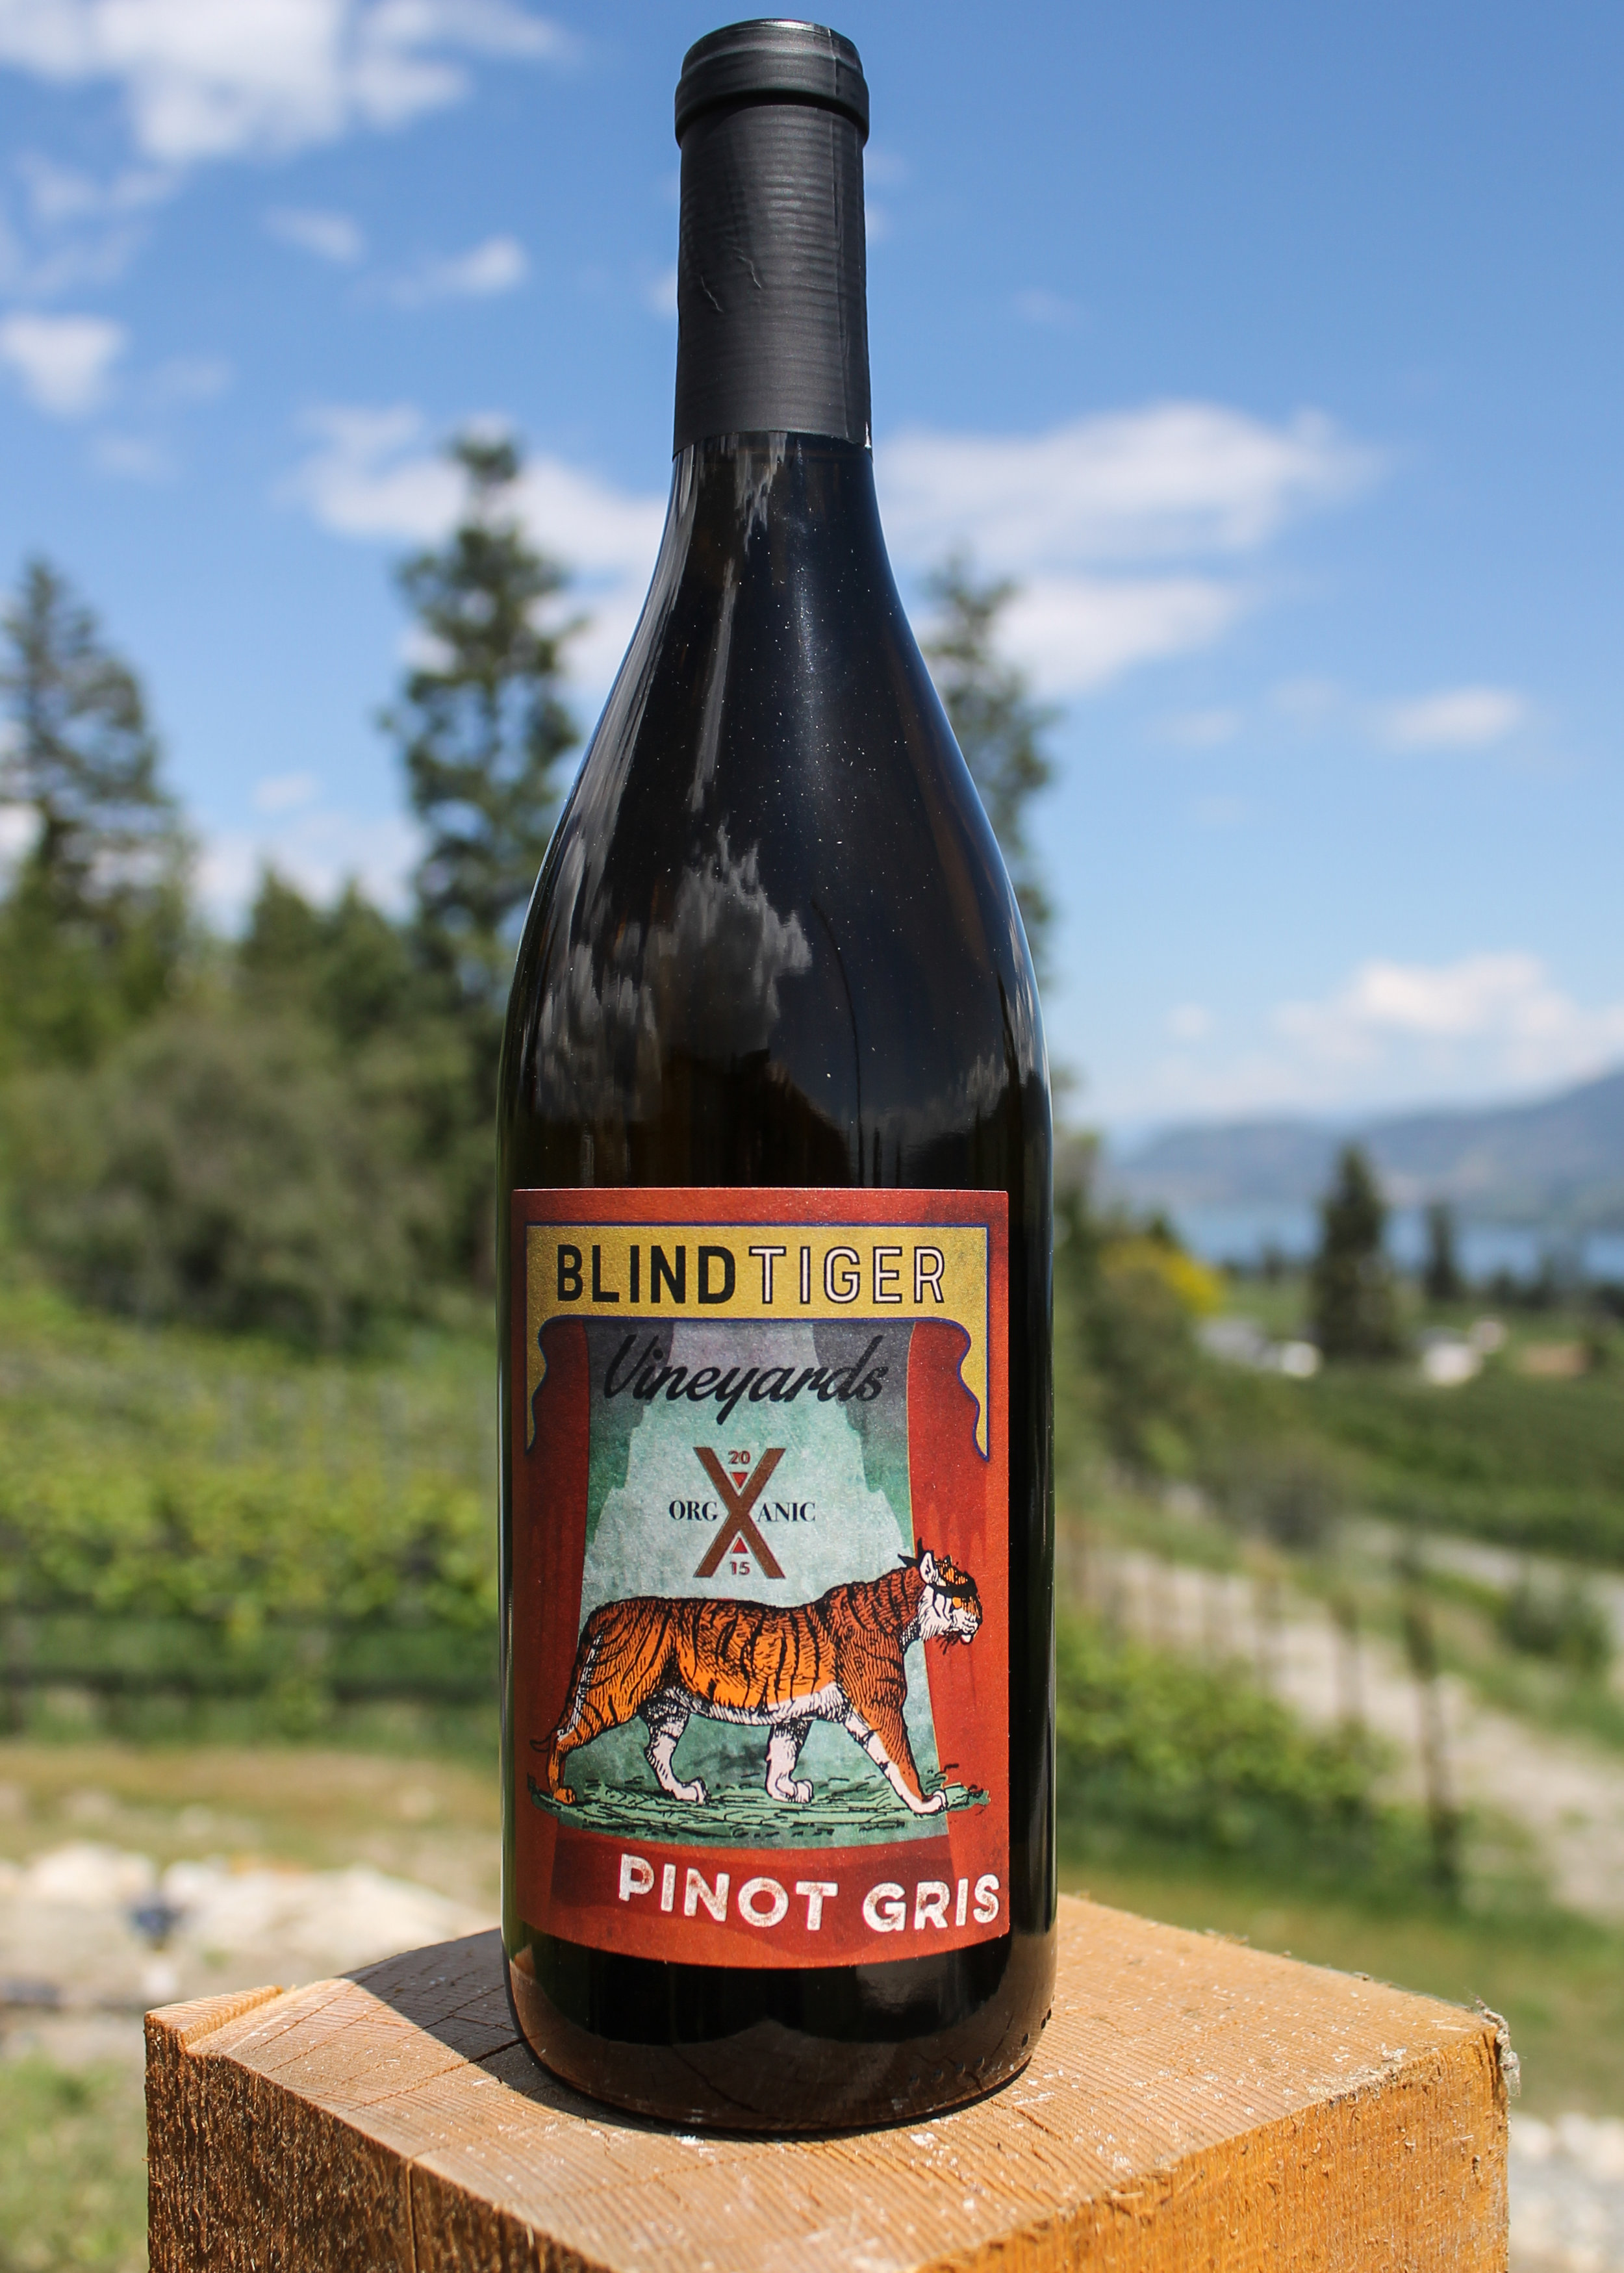 2015 Pinot Gris  - $19.95Light bodied, easy drinking with aromas of Bosc Pear. Light honey notes with an interesting finish. Good acidity keeps it light and refreshing, great for summer evenings. Pairs well with everything, especially Marno's Pizza.